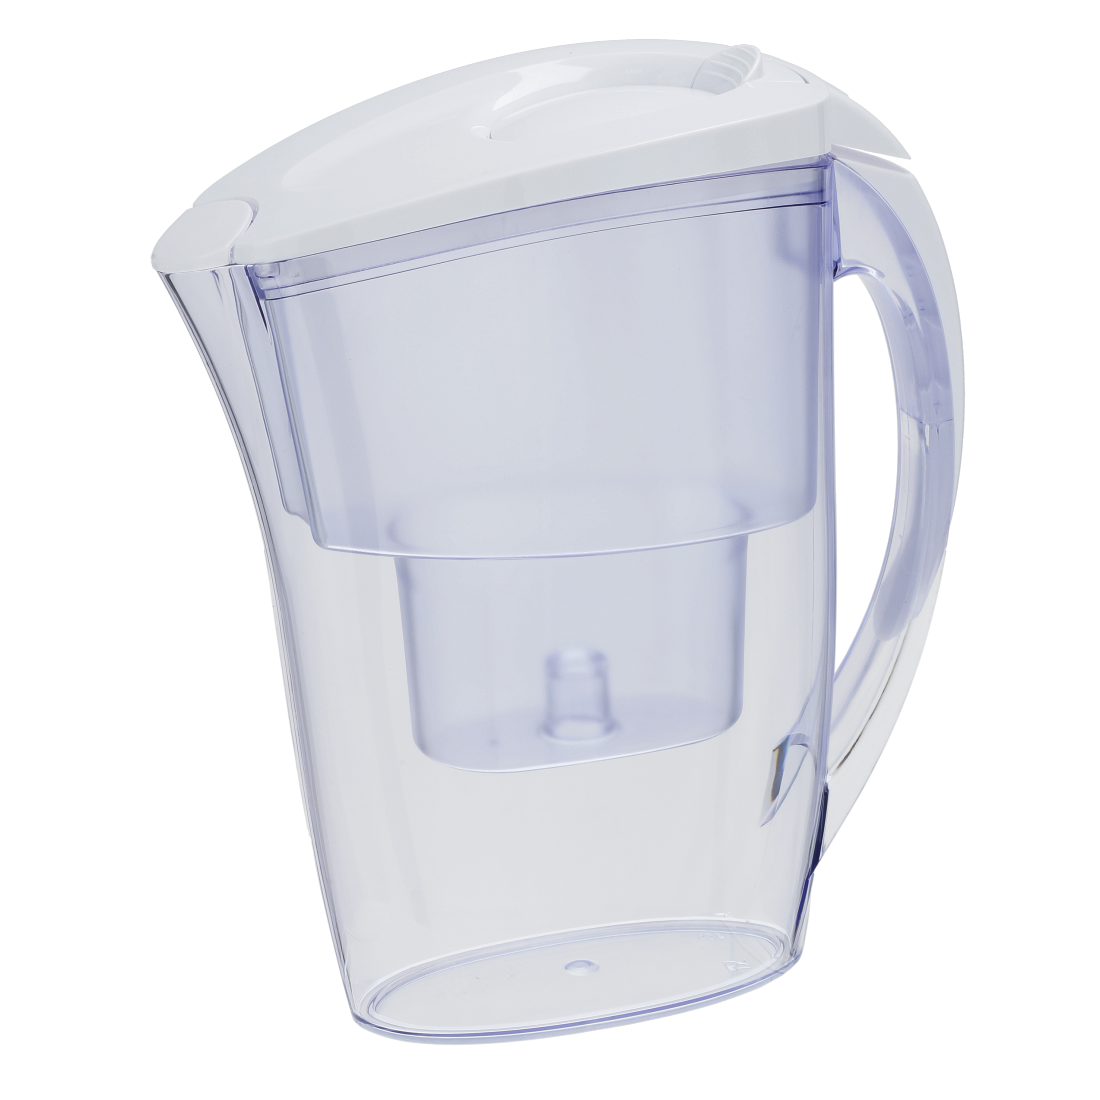 abx High-Res Image - Xavax, Water Filter Jug with 2 Filter Cartridges, 2.4 l, white